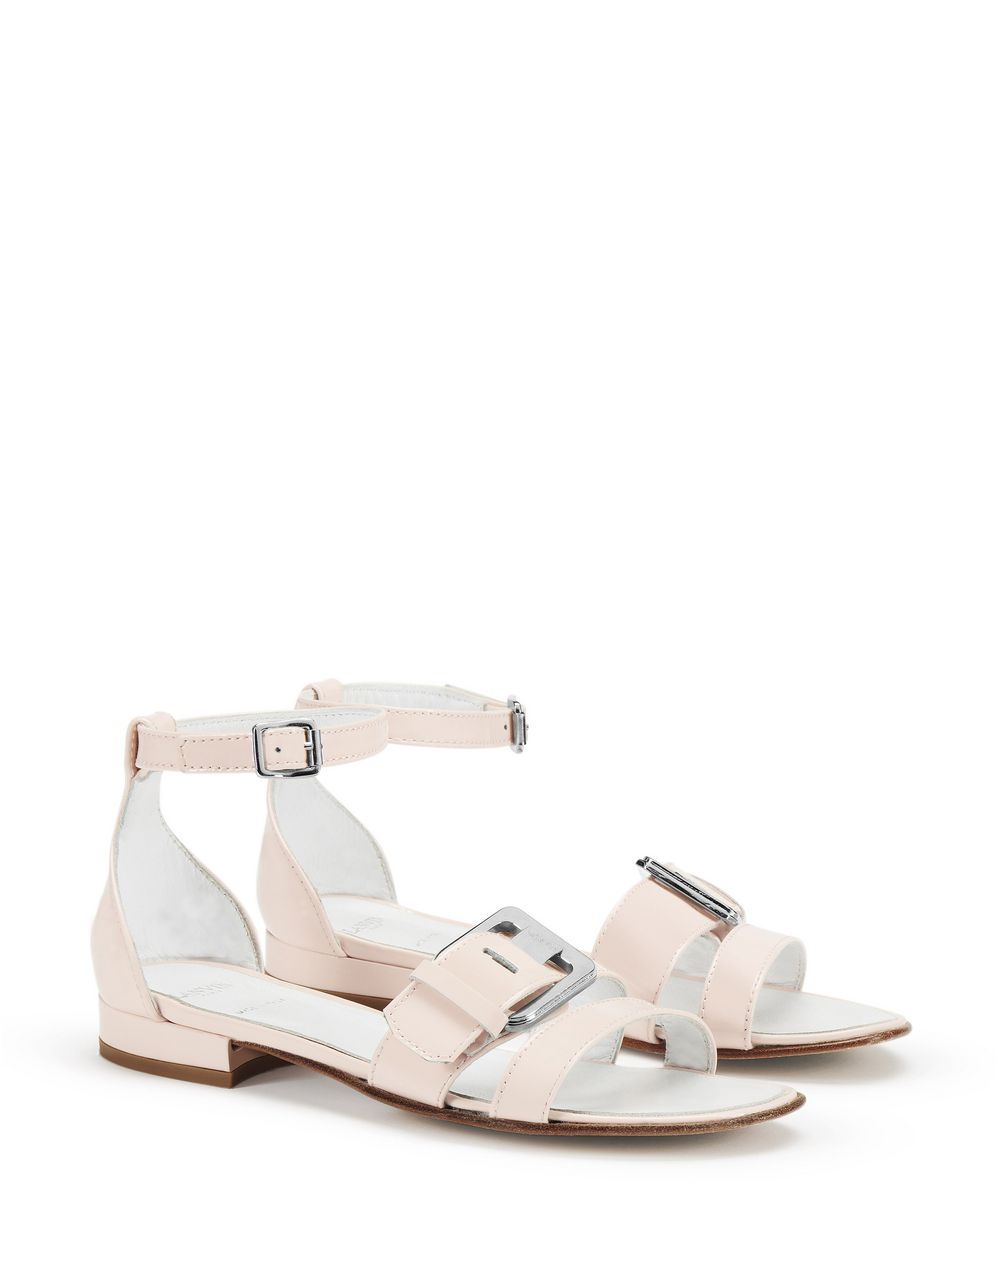 PINK PATENT LEATHER SANDALS      - Lanvin